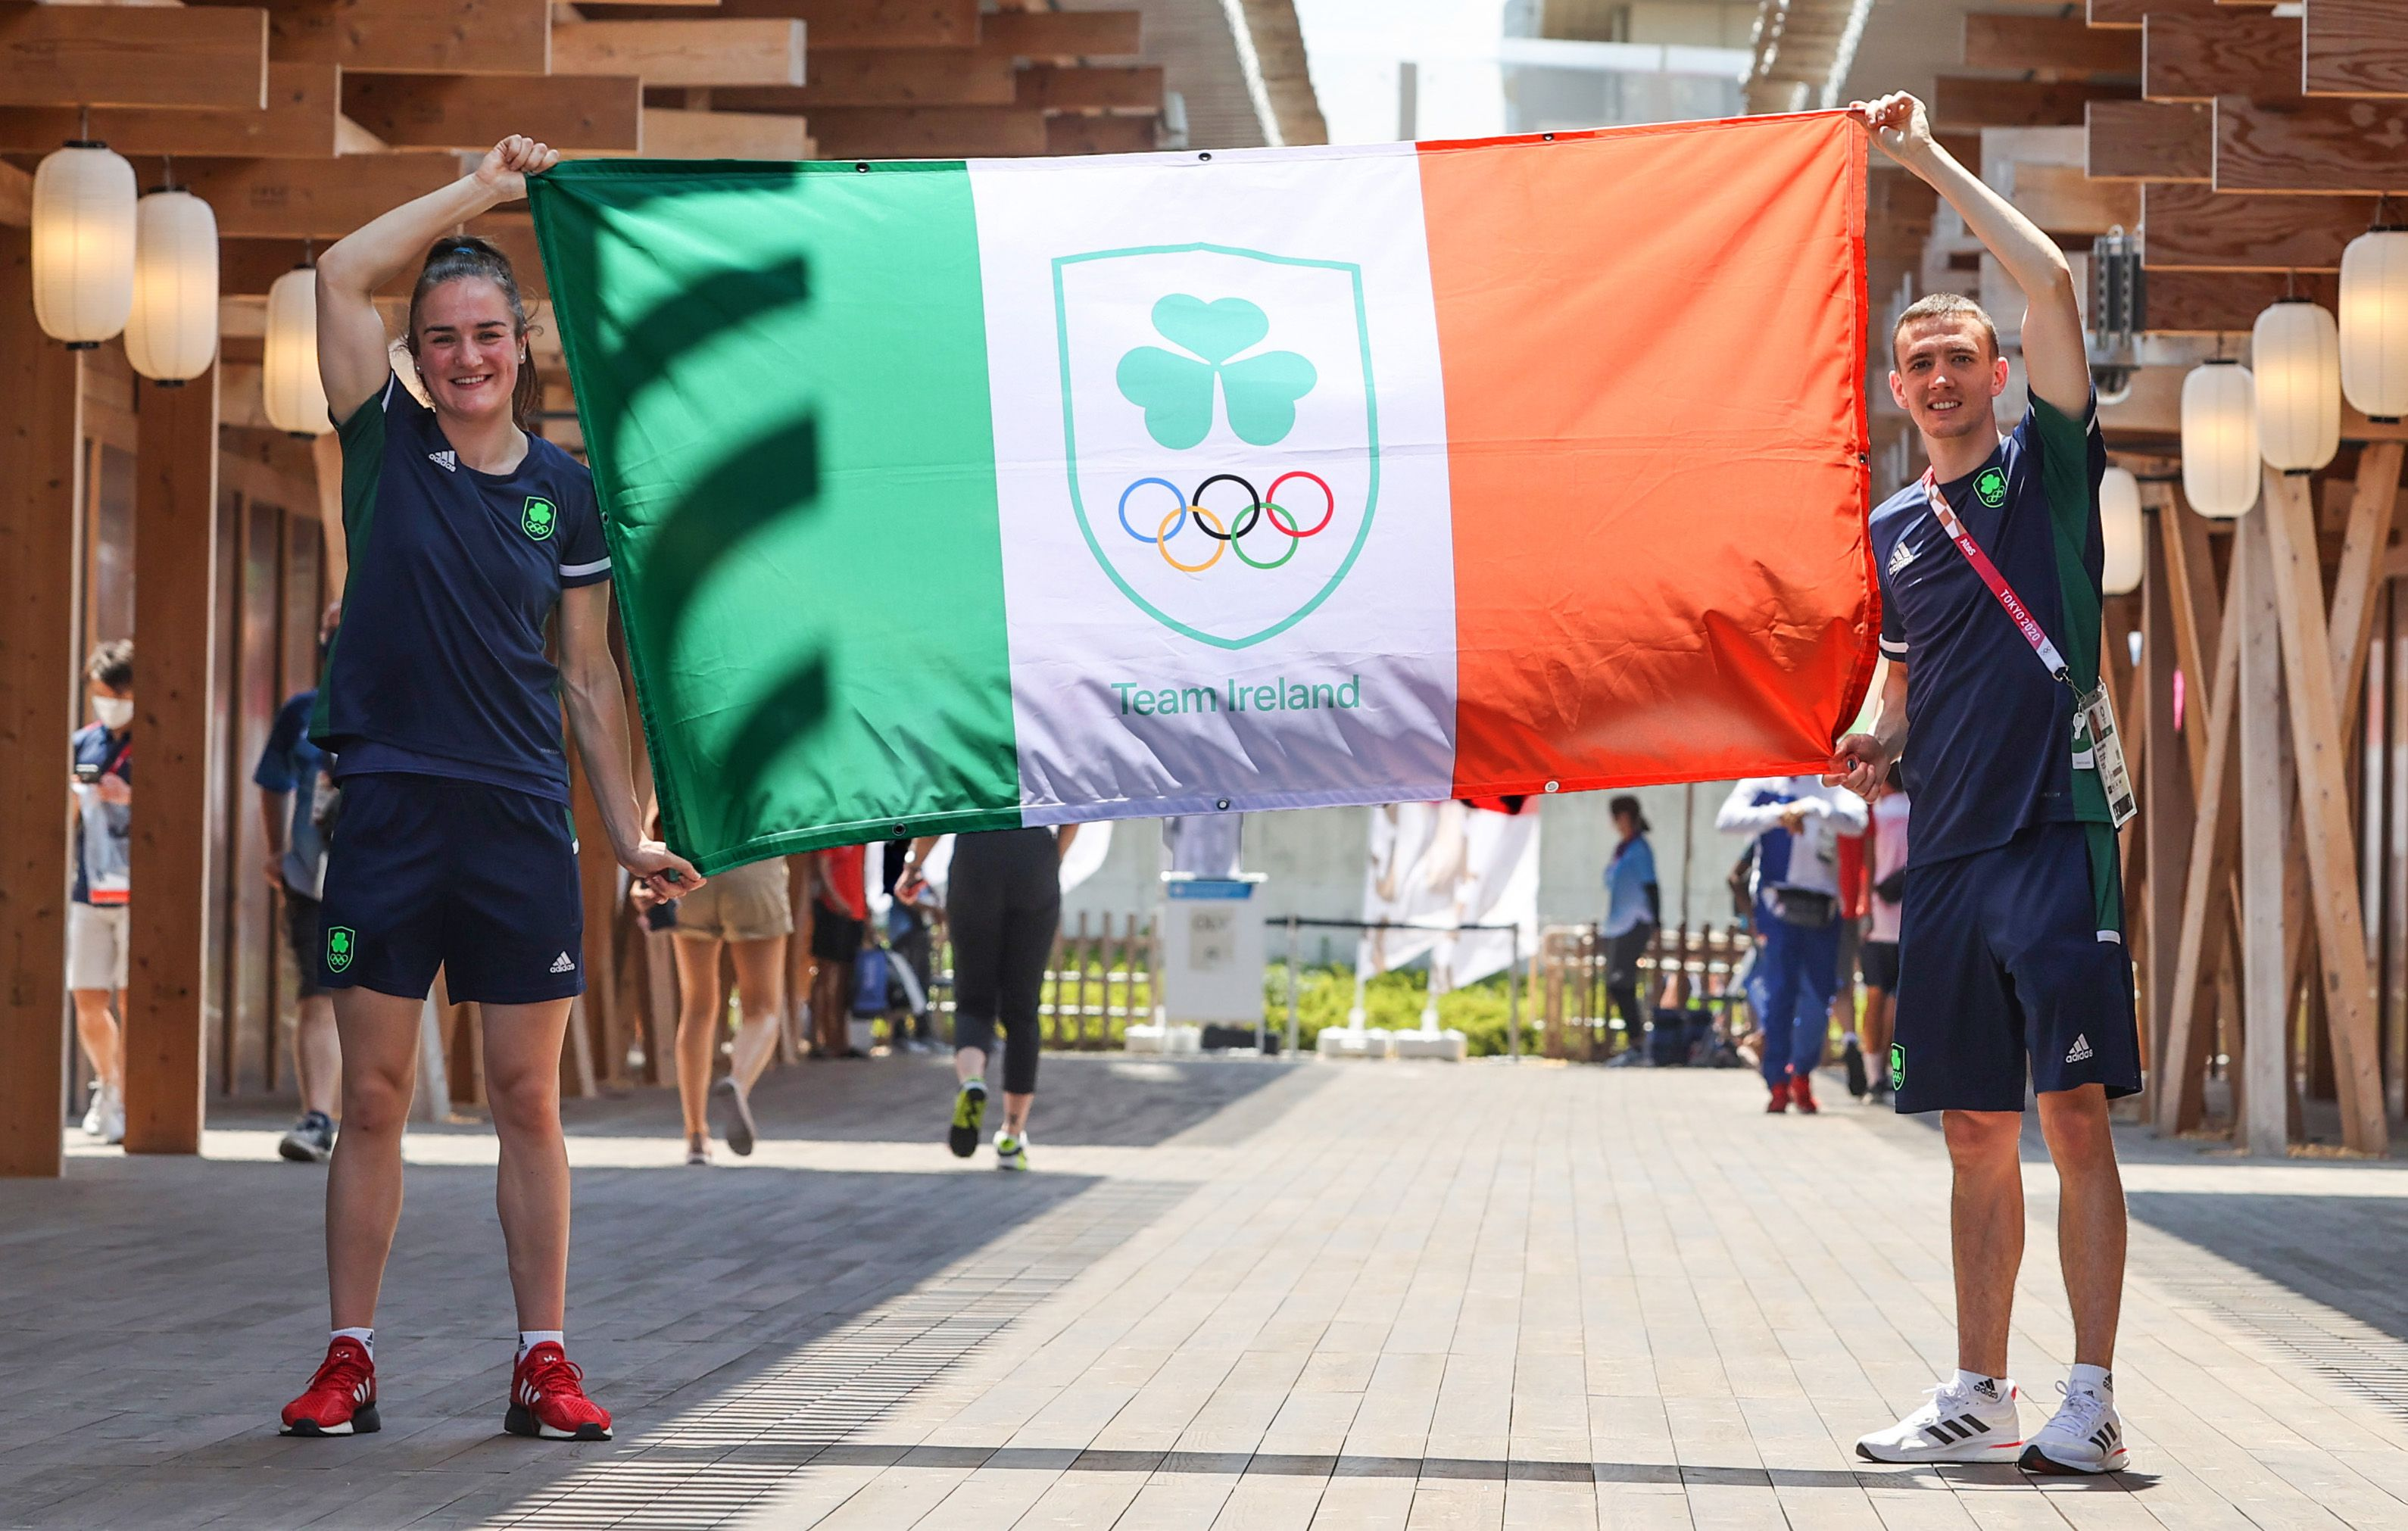 Kellie Harrington and West Belfast\'s Brendan Irvine have been named at Team Ireland\'s flagbearers at Friday\'s Opening Ceremony in Tokyo